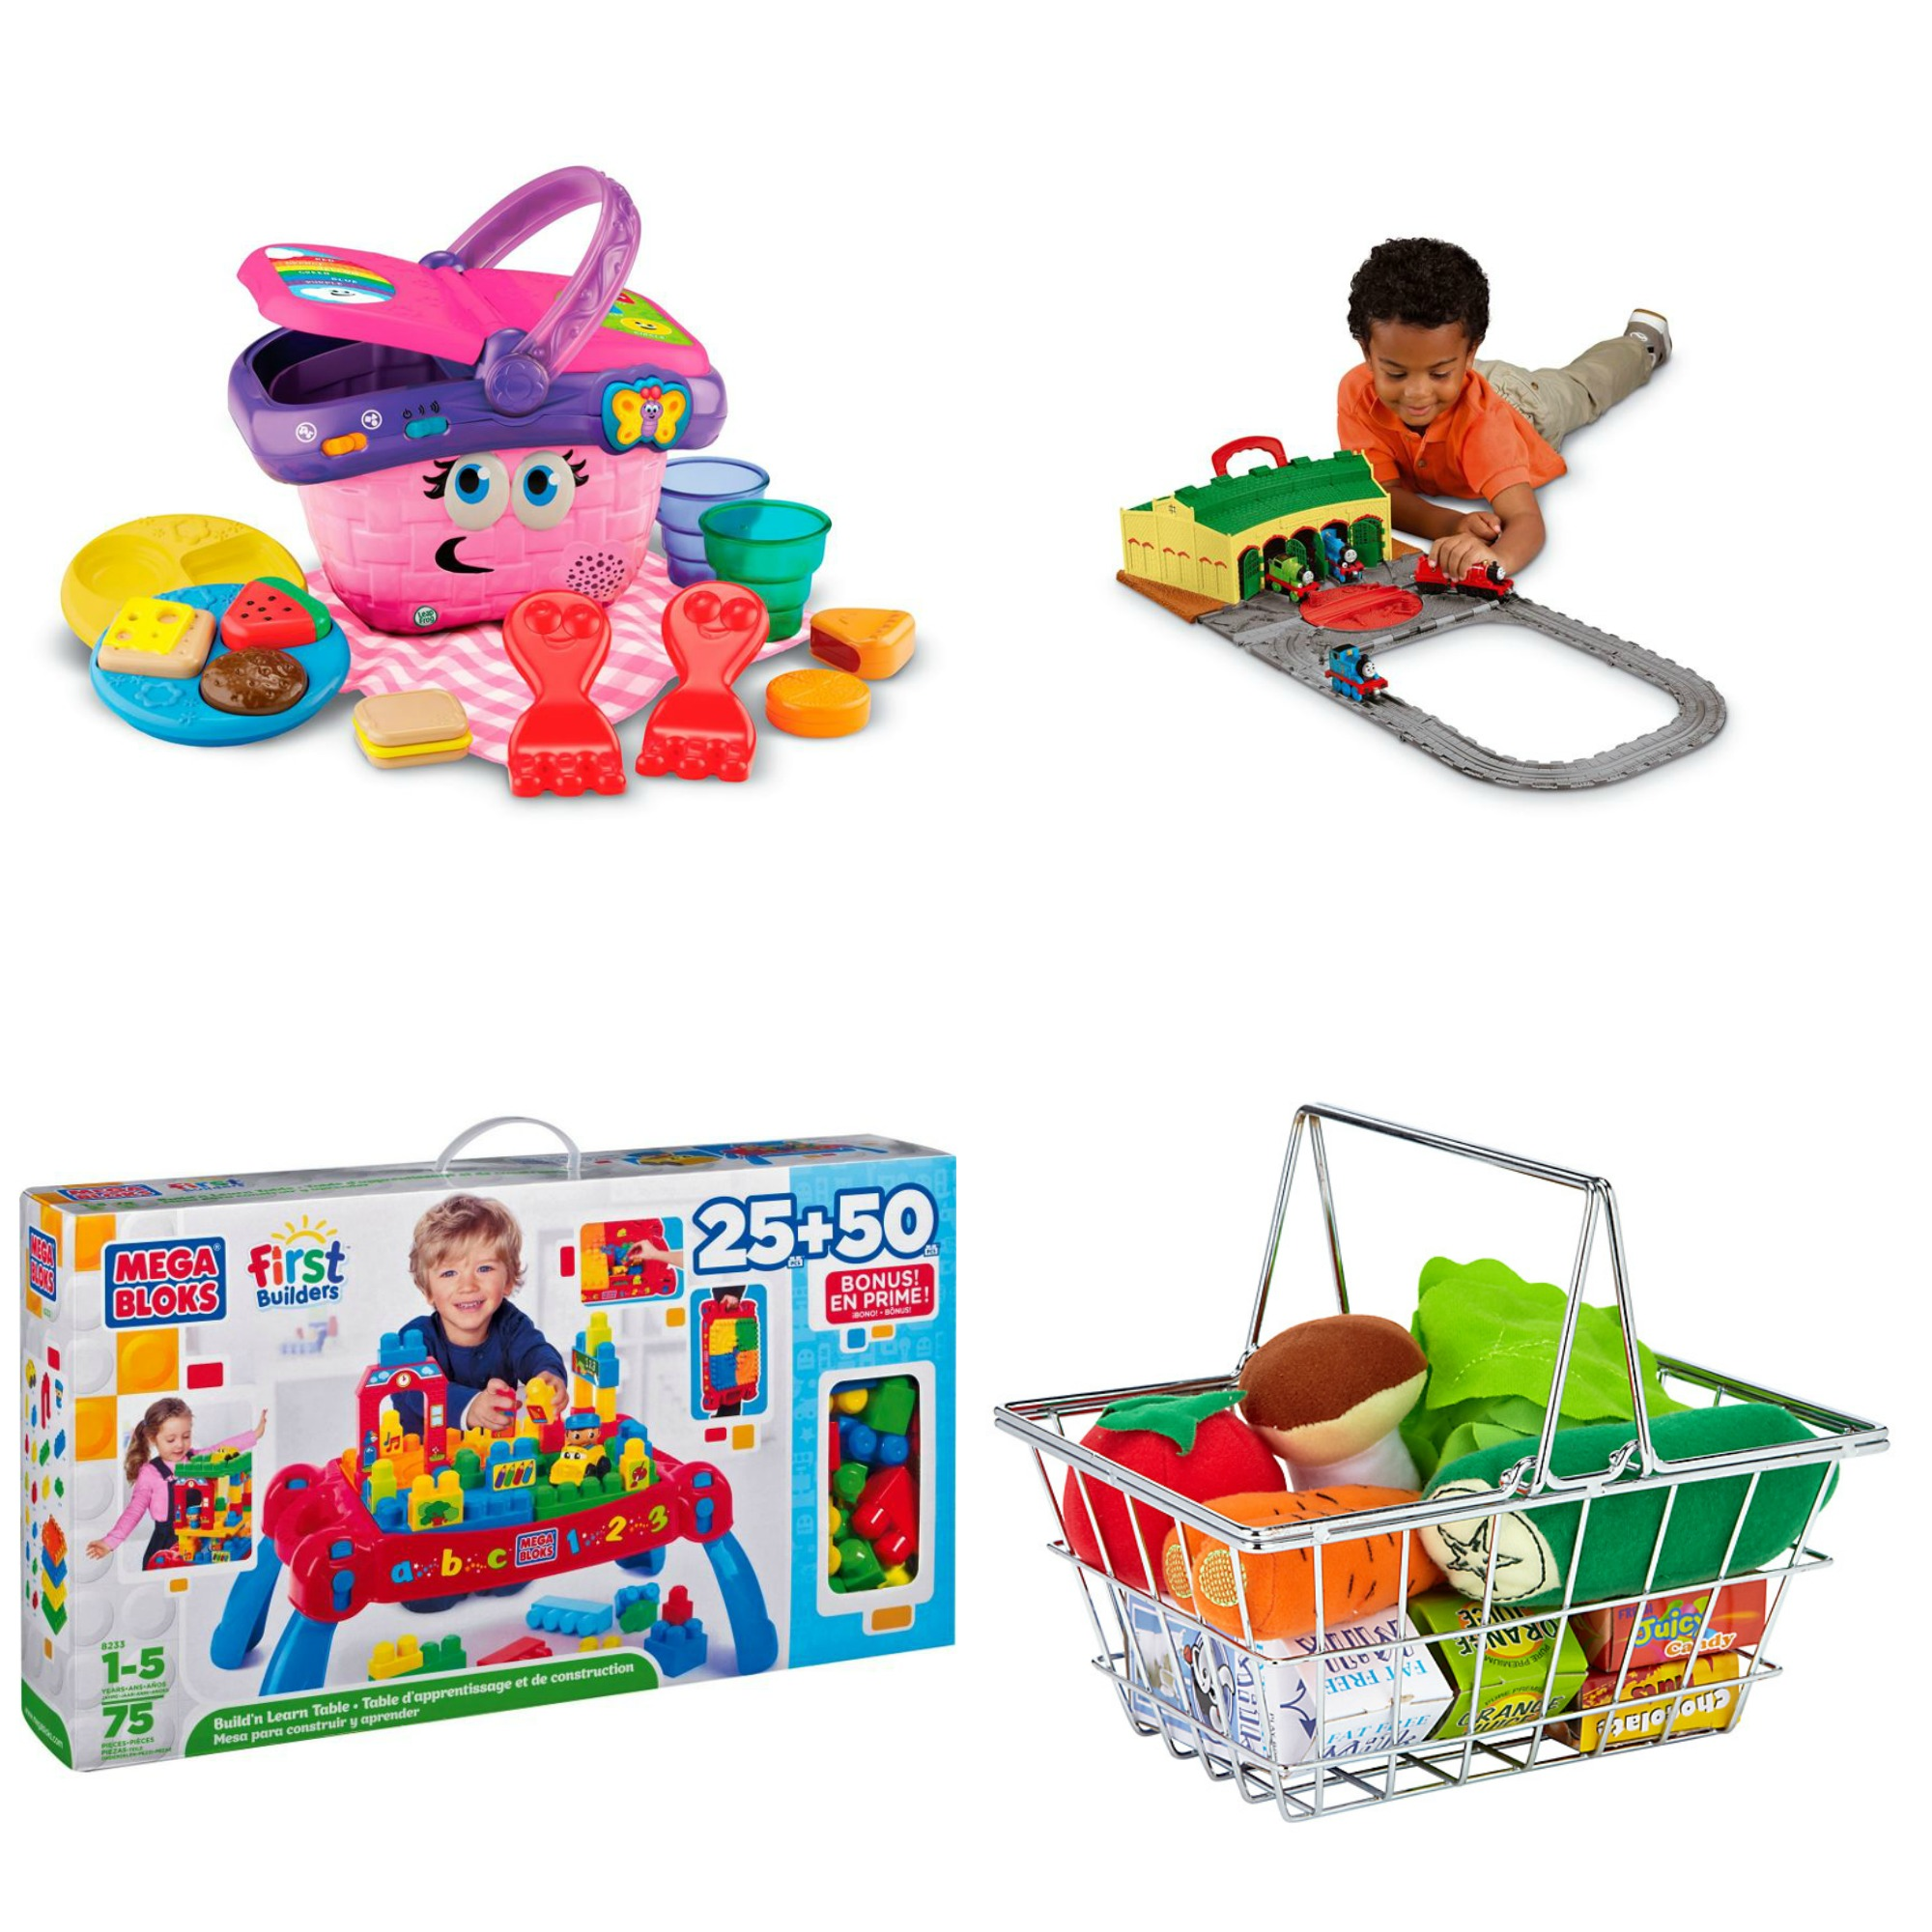 2000x2000 Toddler 2nd Birthday Gift Guide